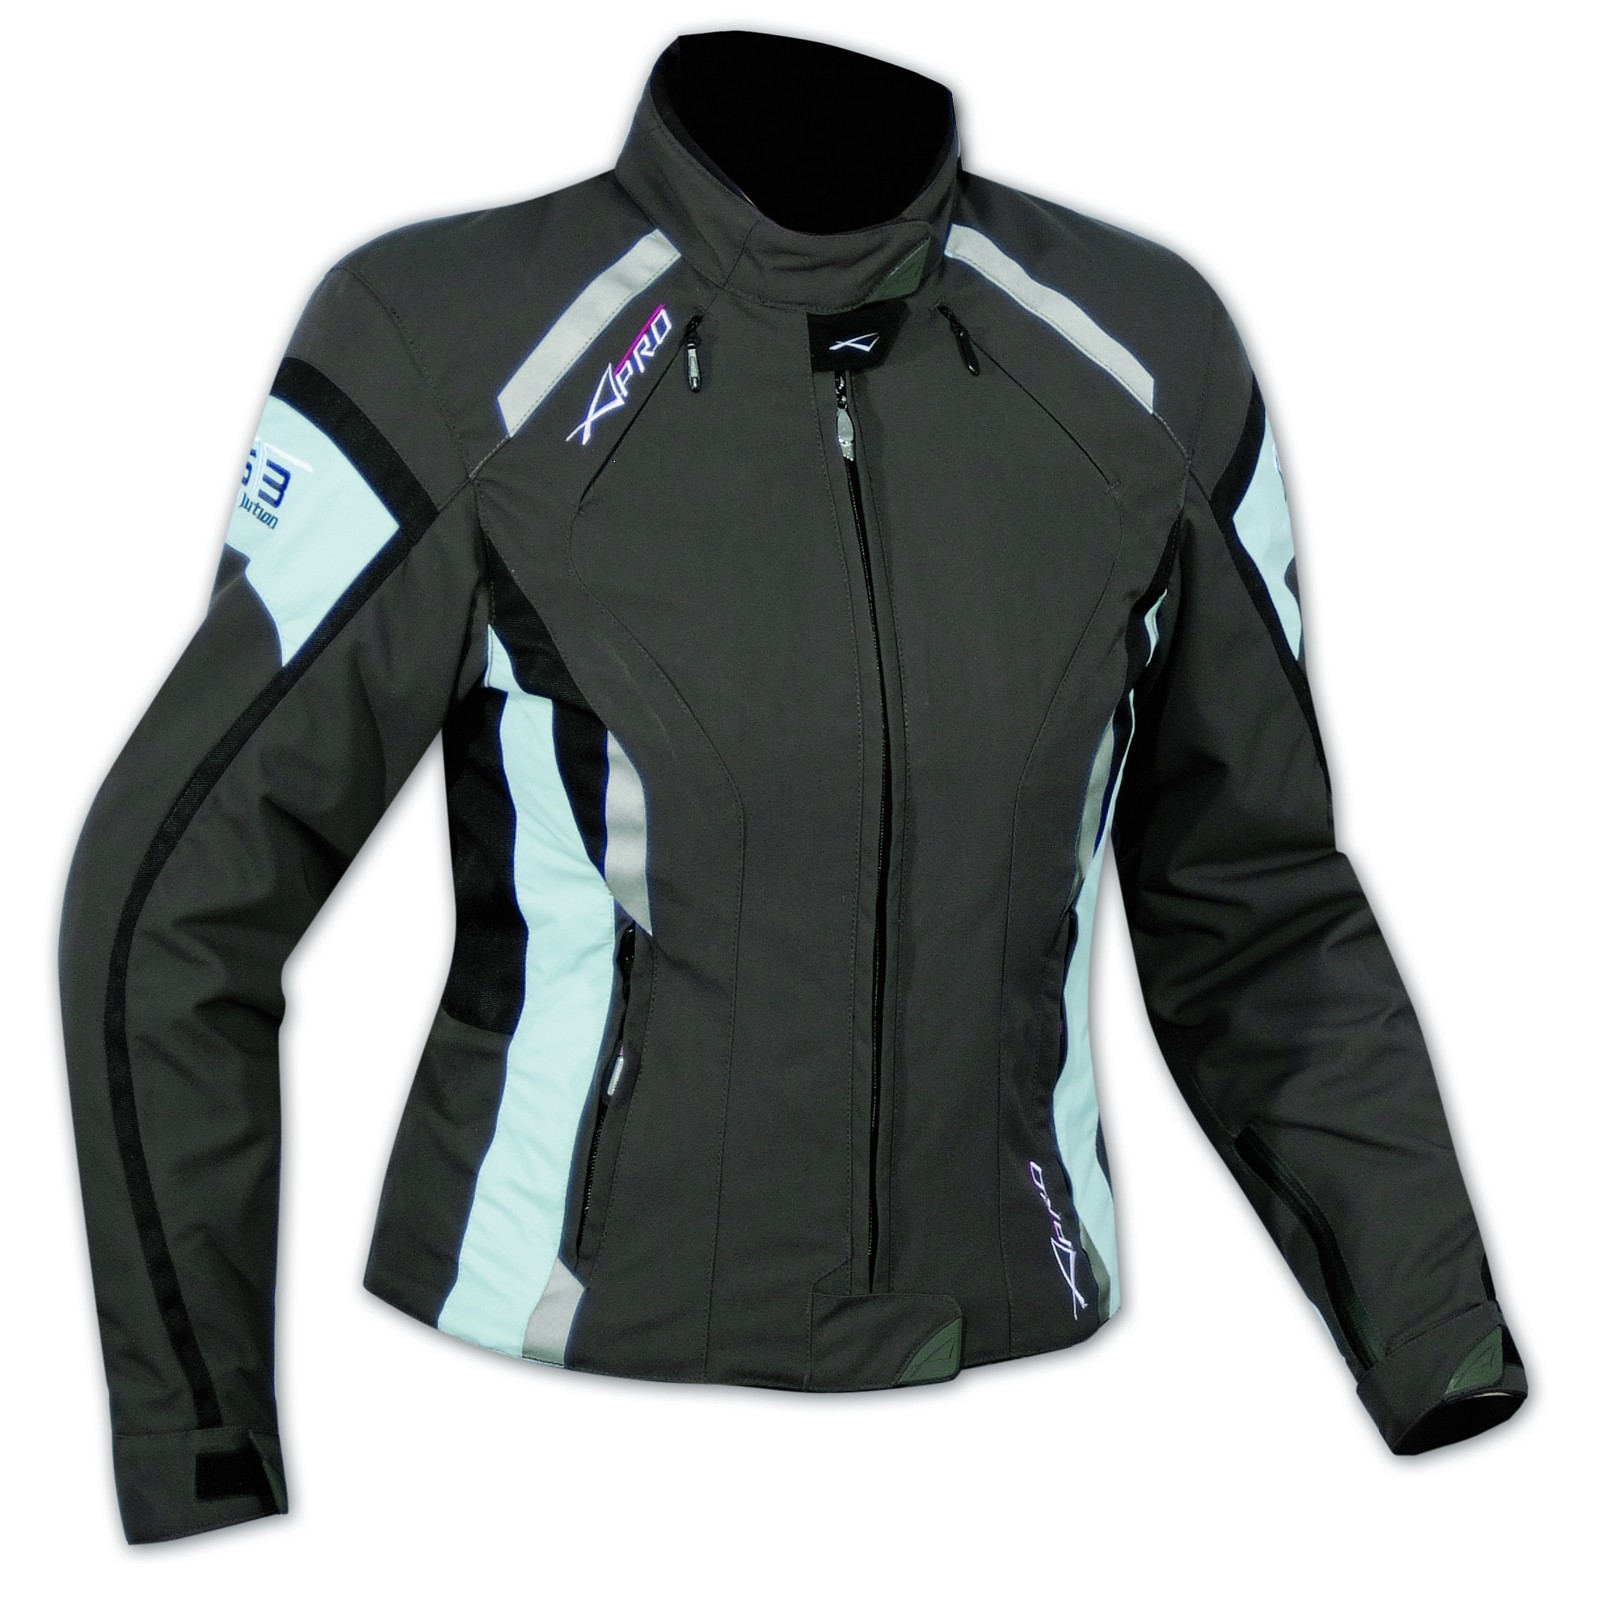 Giacca Moto Donna Impermeabile 4 Stagioni Scooter Sport Custom Lady Marrone